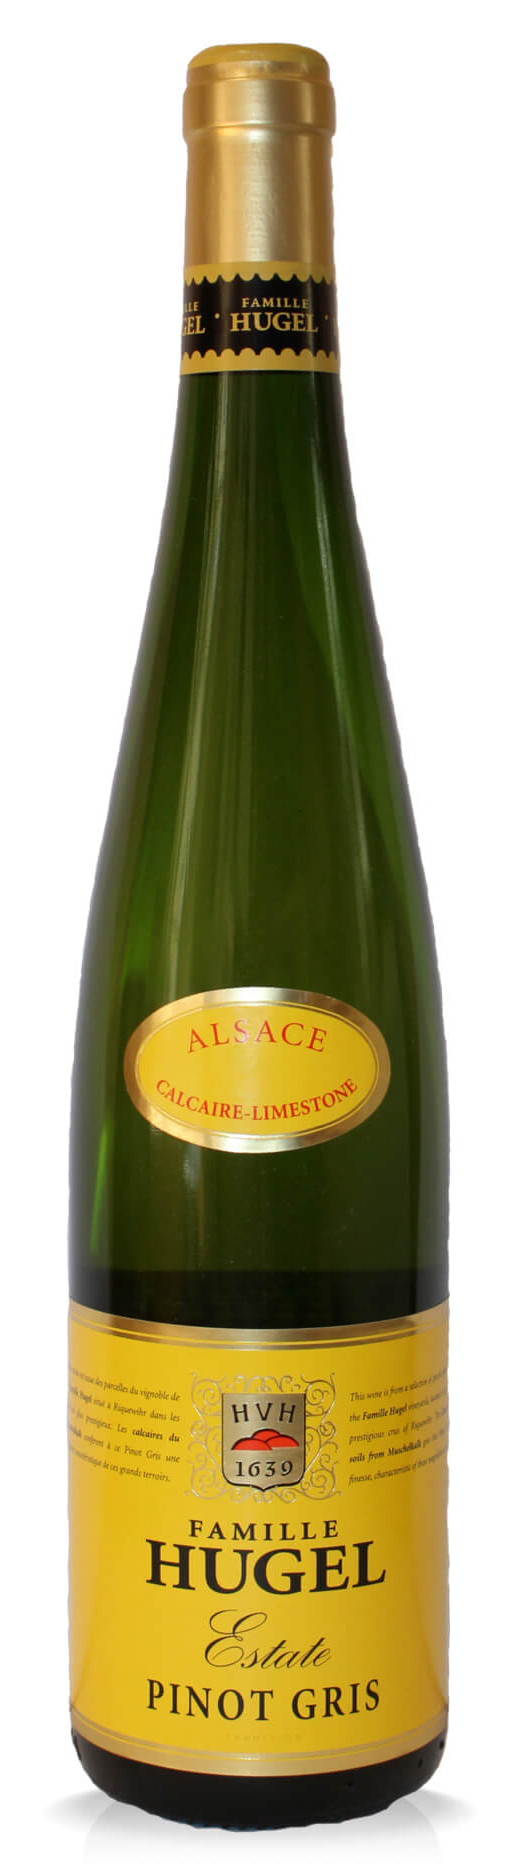 Hugel, Estate Pinot Gris, Alsace, France, 2015